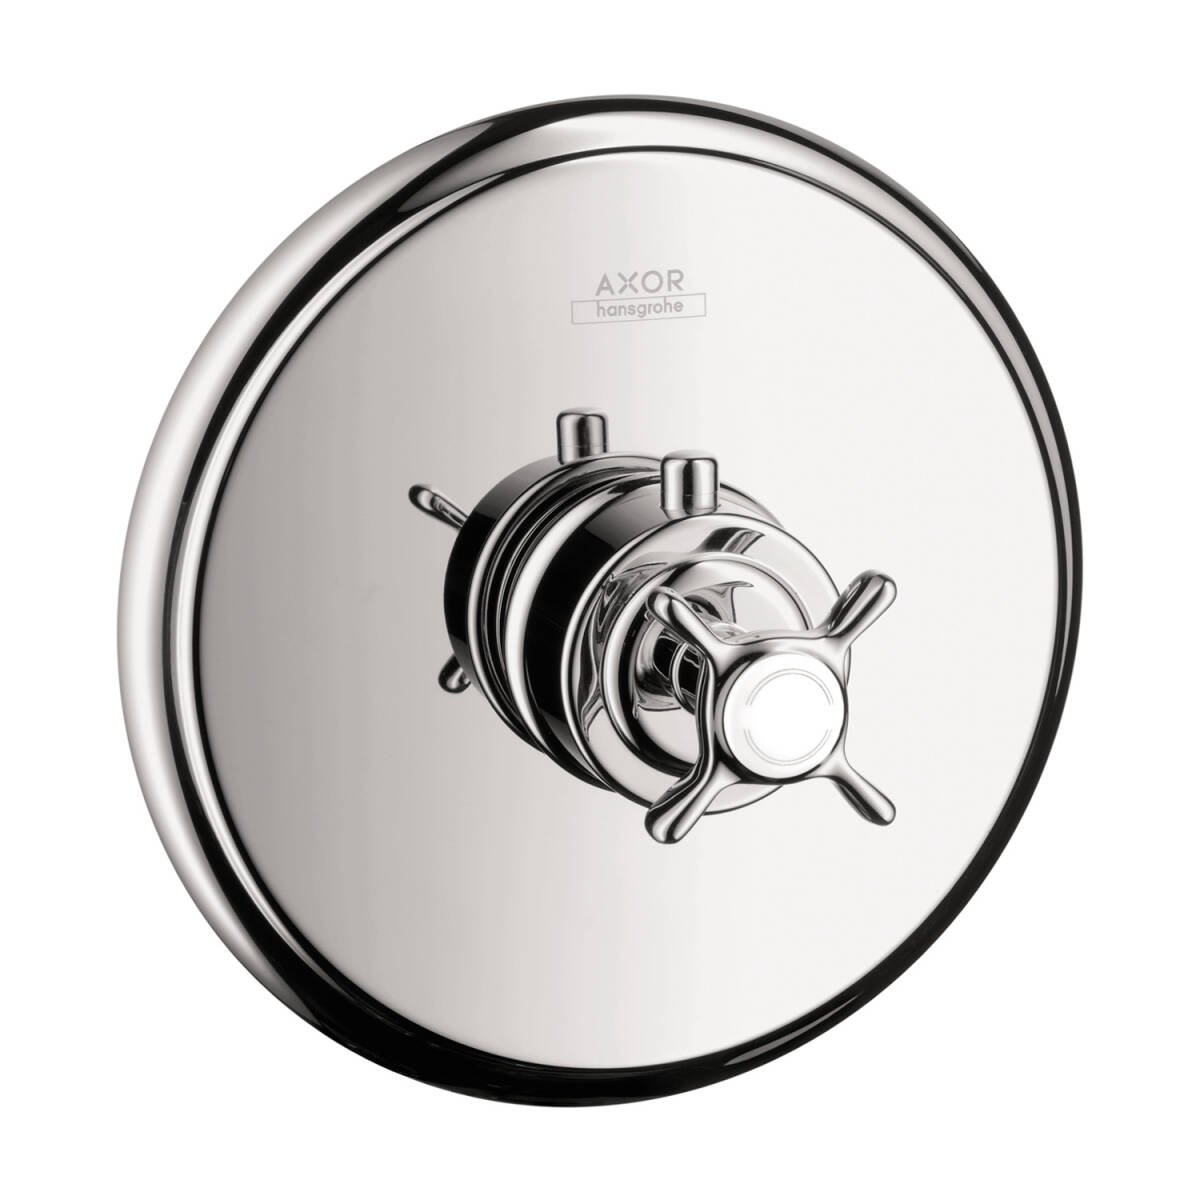 Thermostat for concealed installation with cross handle and shut-off valve, Chrome, 16816001